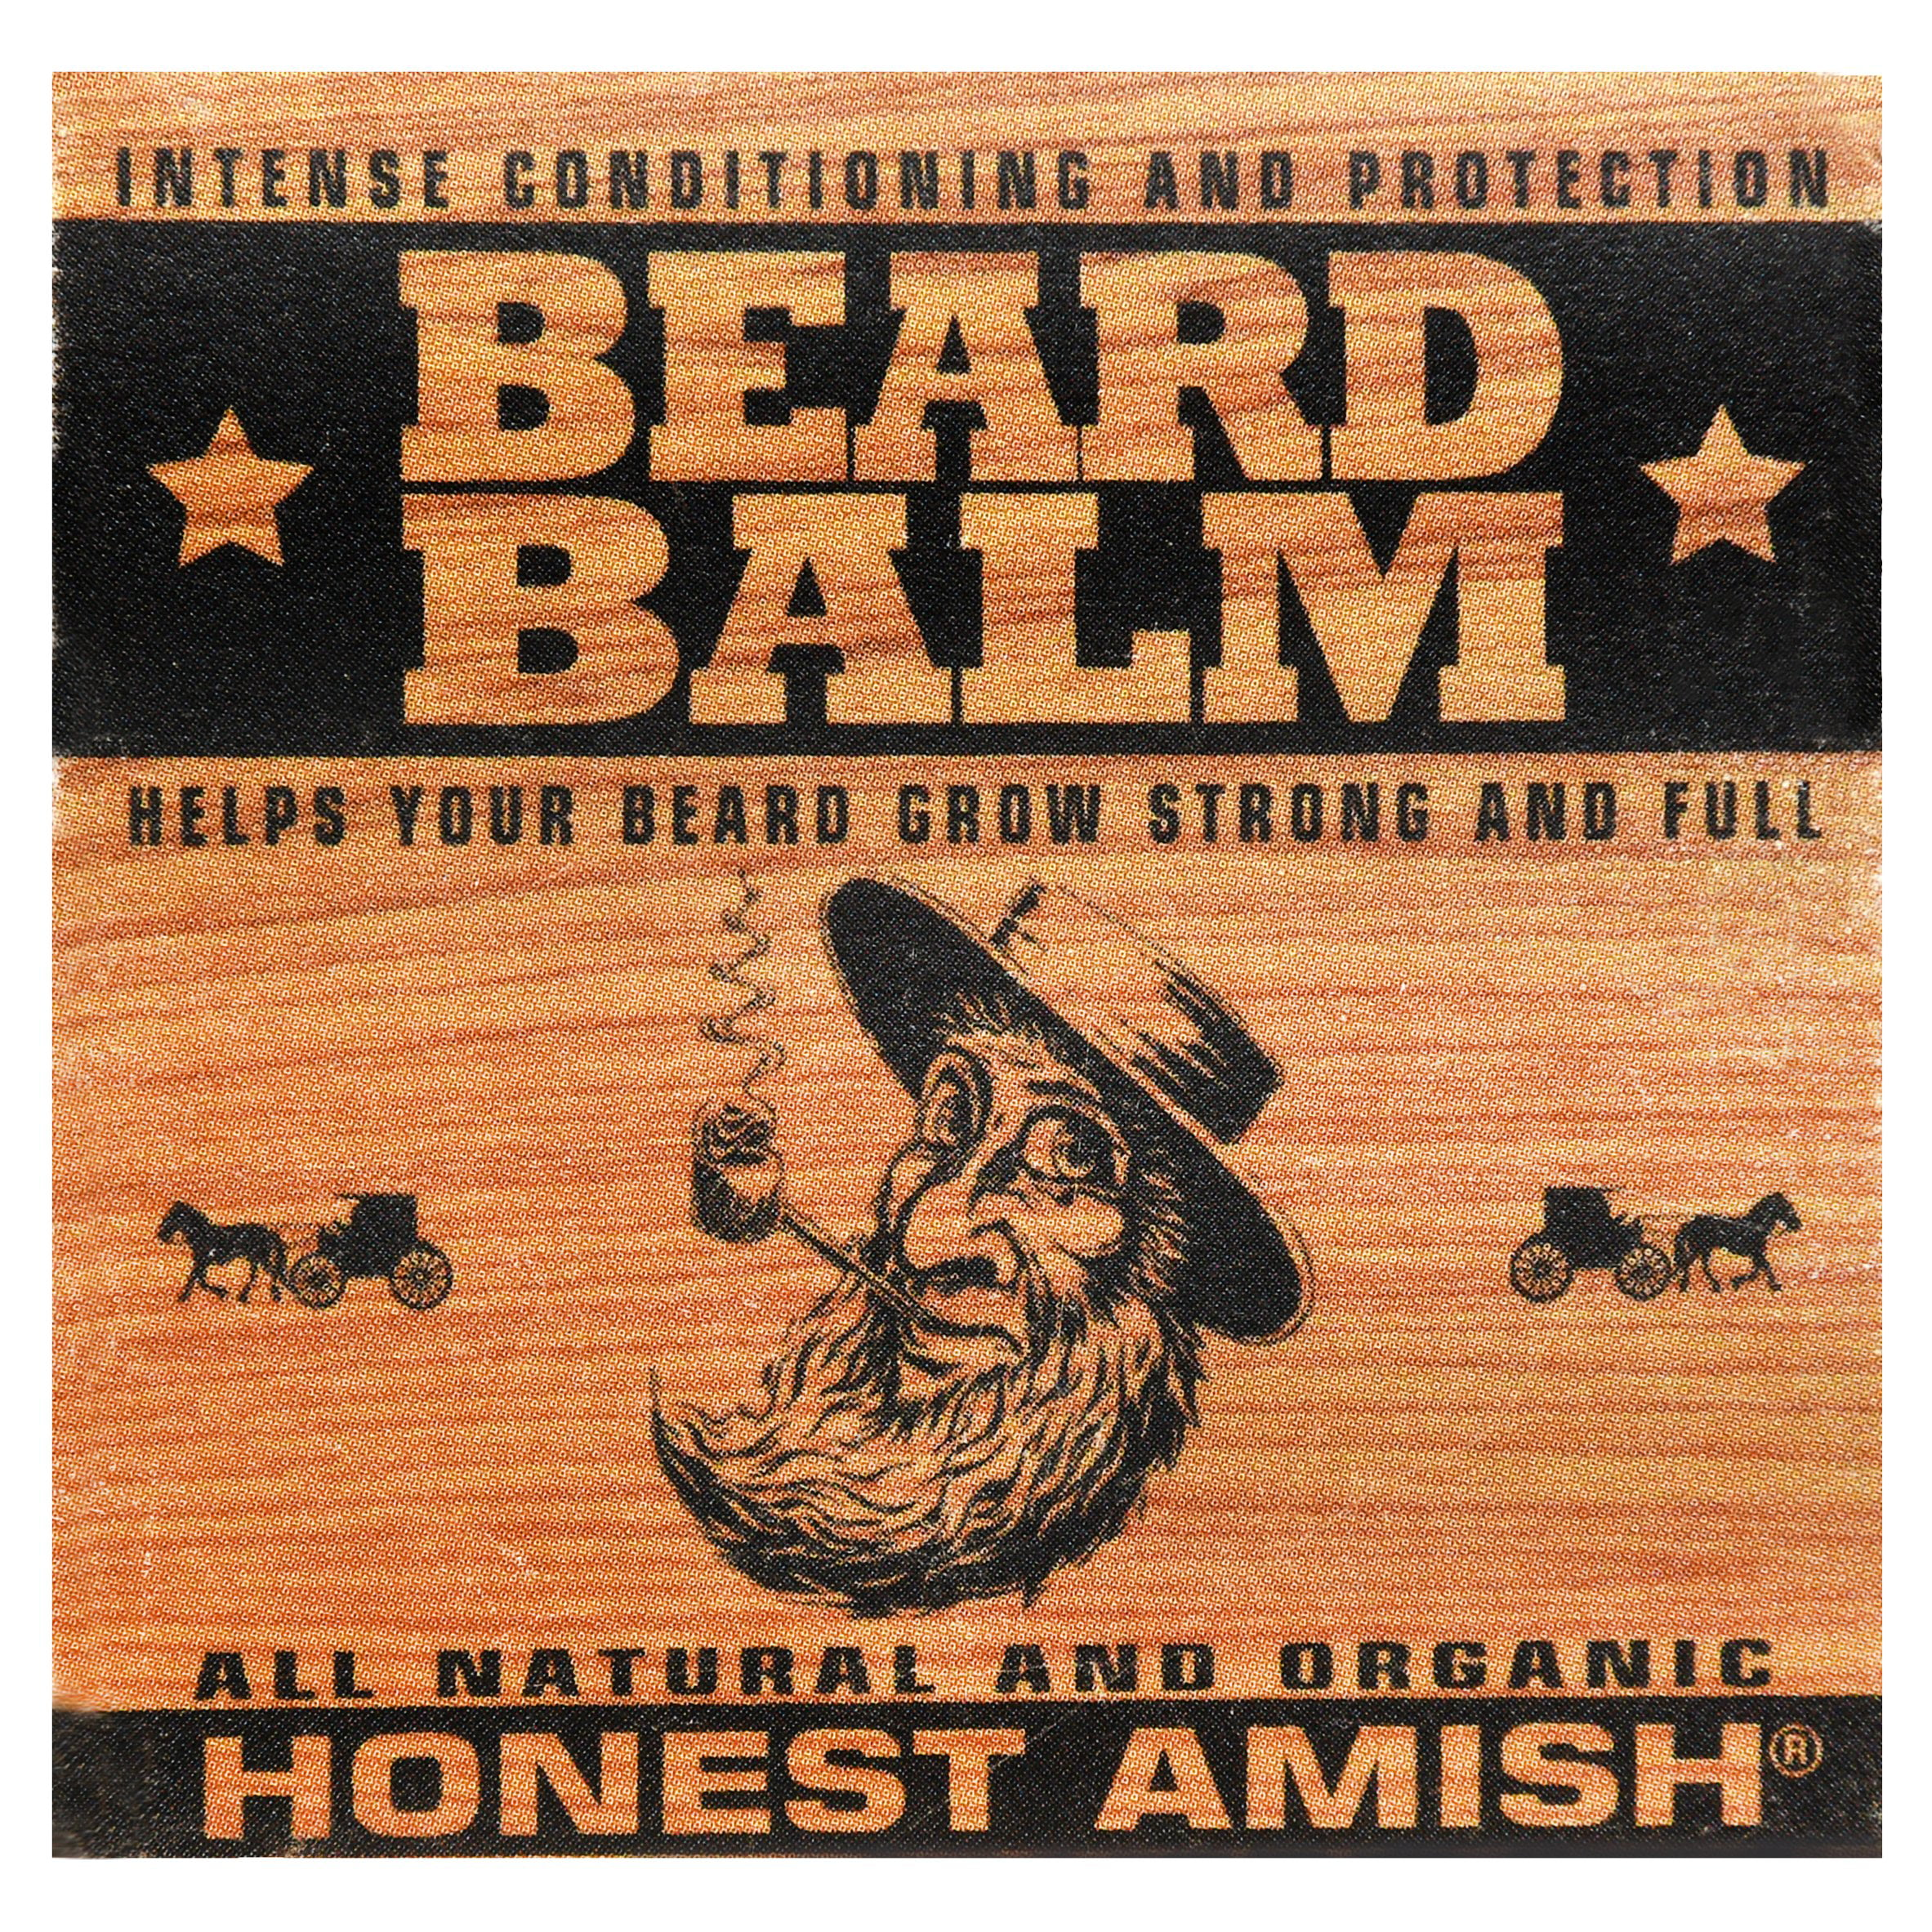 Honest Amish Beard Balm - Walmart com